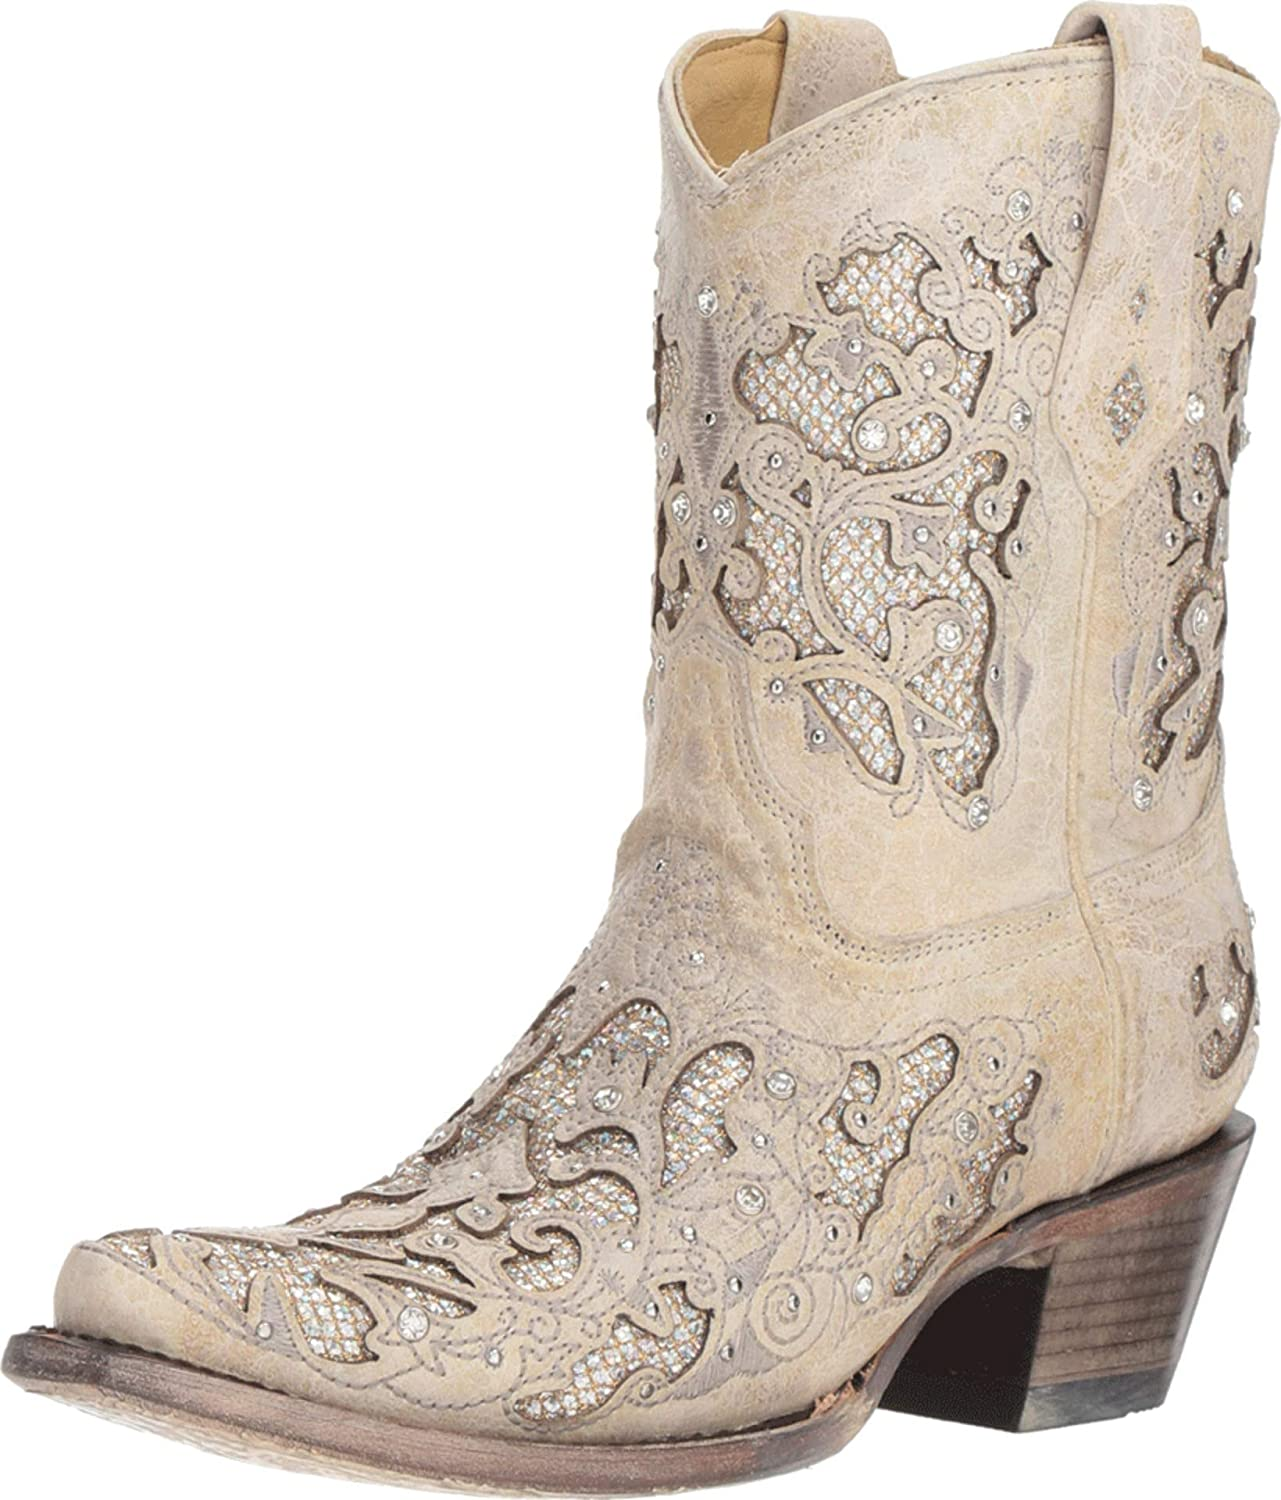 Corral Boots Women's A3550